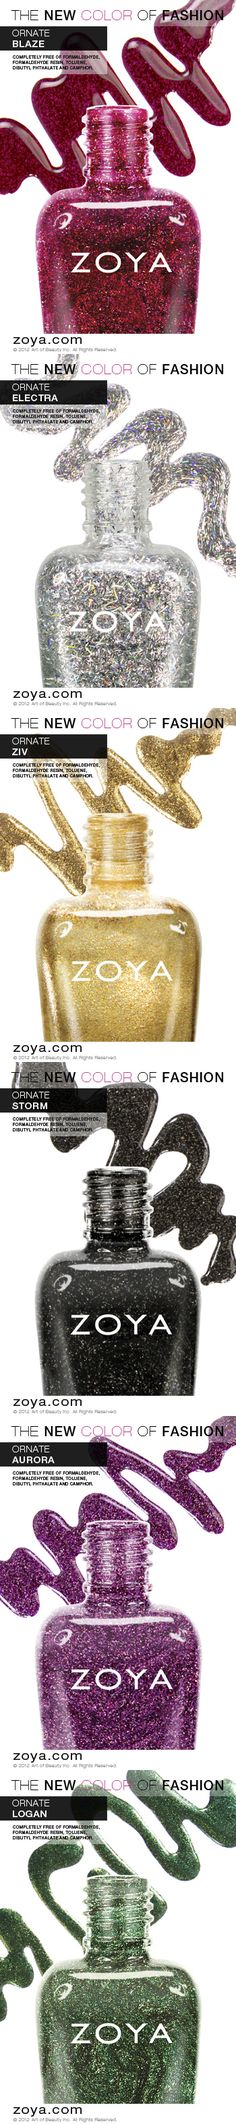 Introducing the Zoya Ornate Collection for Holiday/Winter 2012/2013! www.zoya.com/content/38/category/Zoya-Ornate-Winter-Holiday-Nail-Polish-Collection.html?O=PN121001MO13243